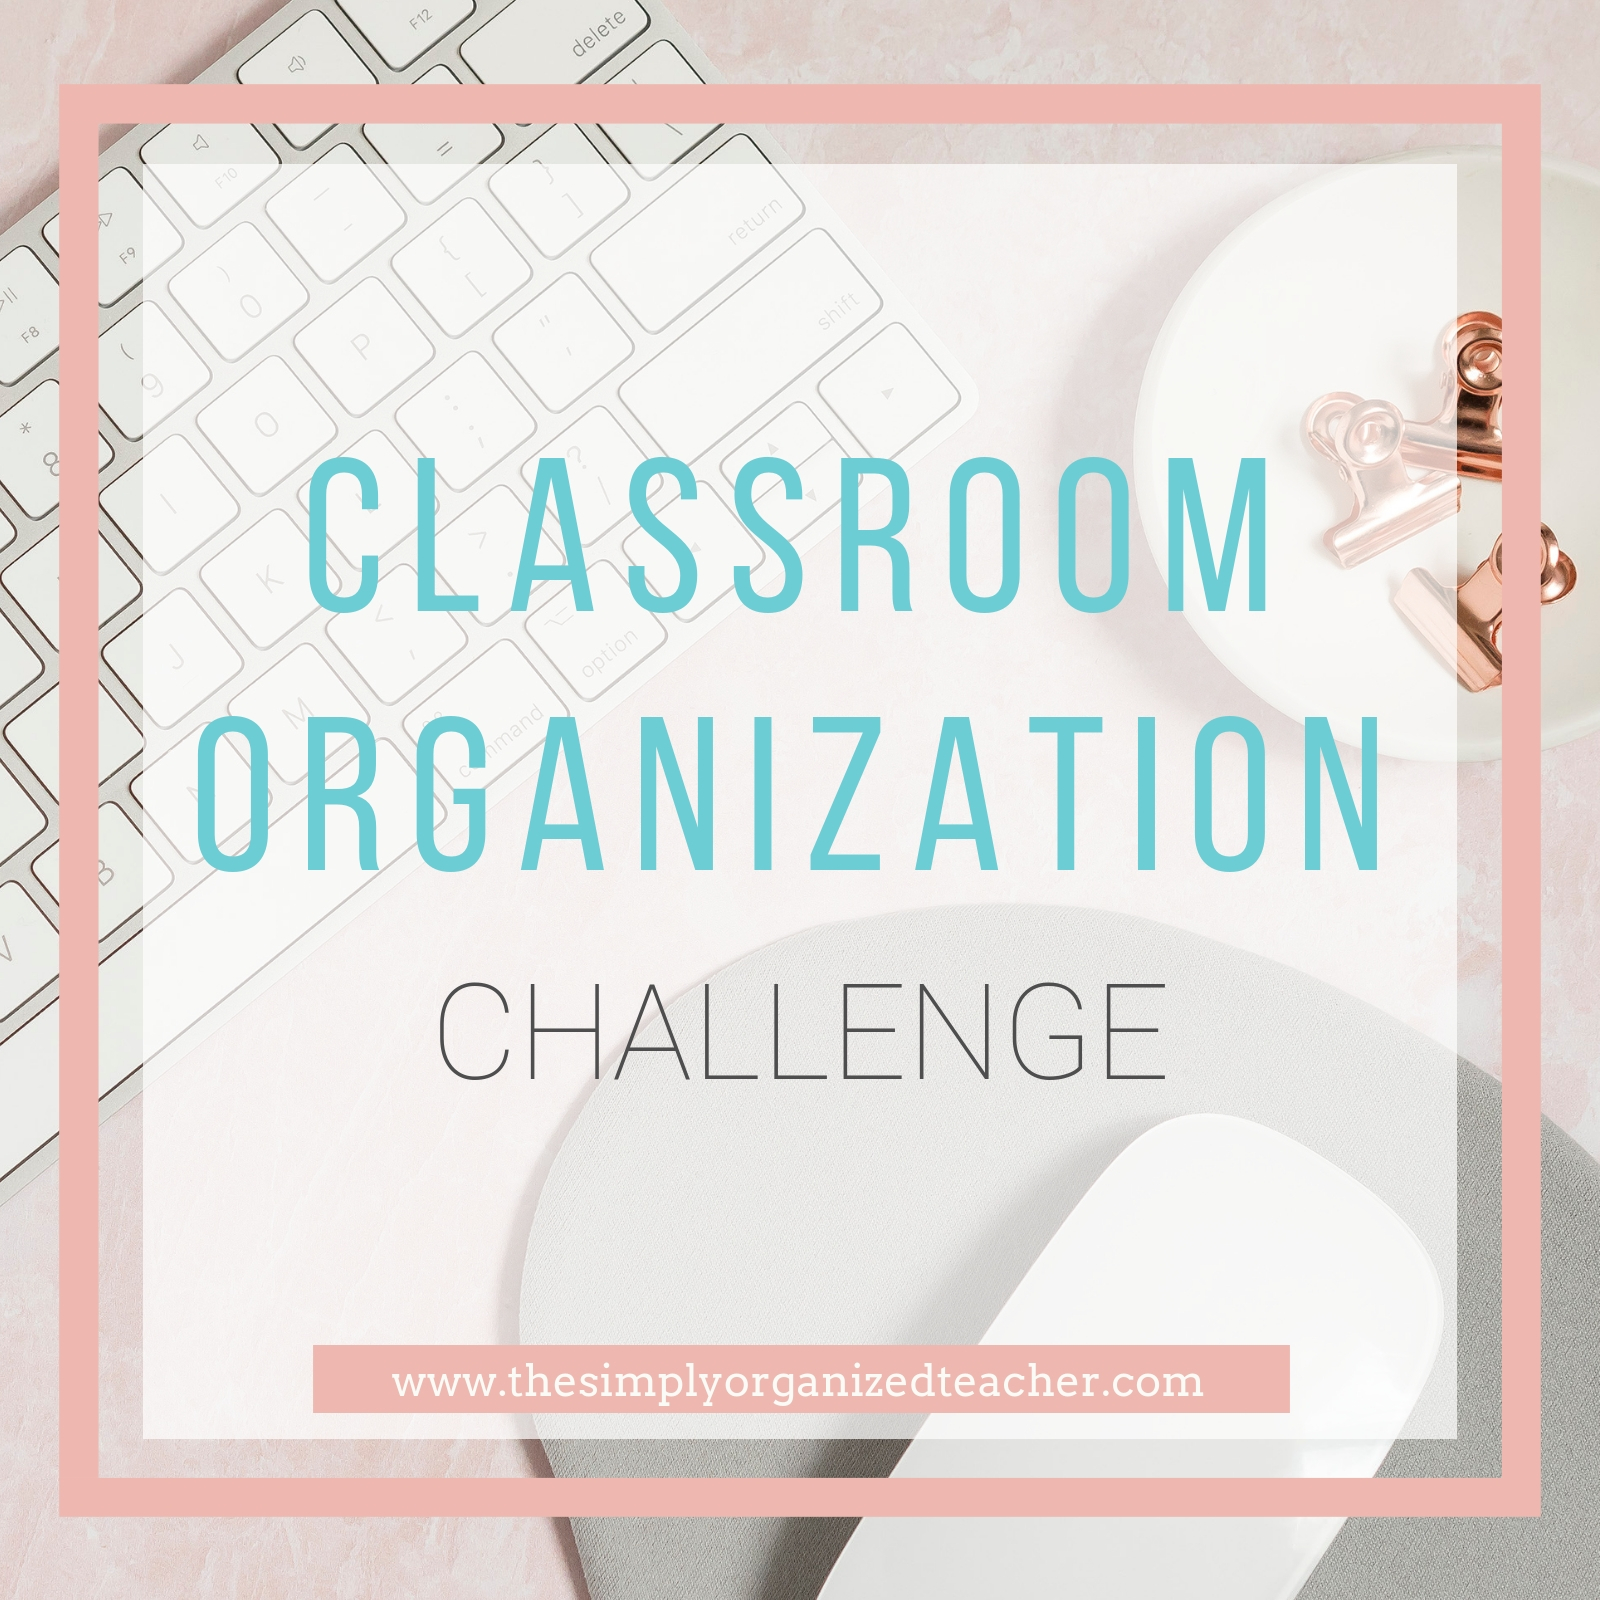 Classroom Organization Challenge for teachers looking to clean up and organize their teacher desk, student desks, papers, and classroom cabinets.